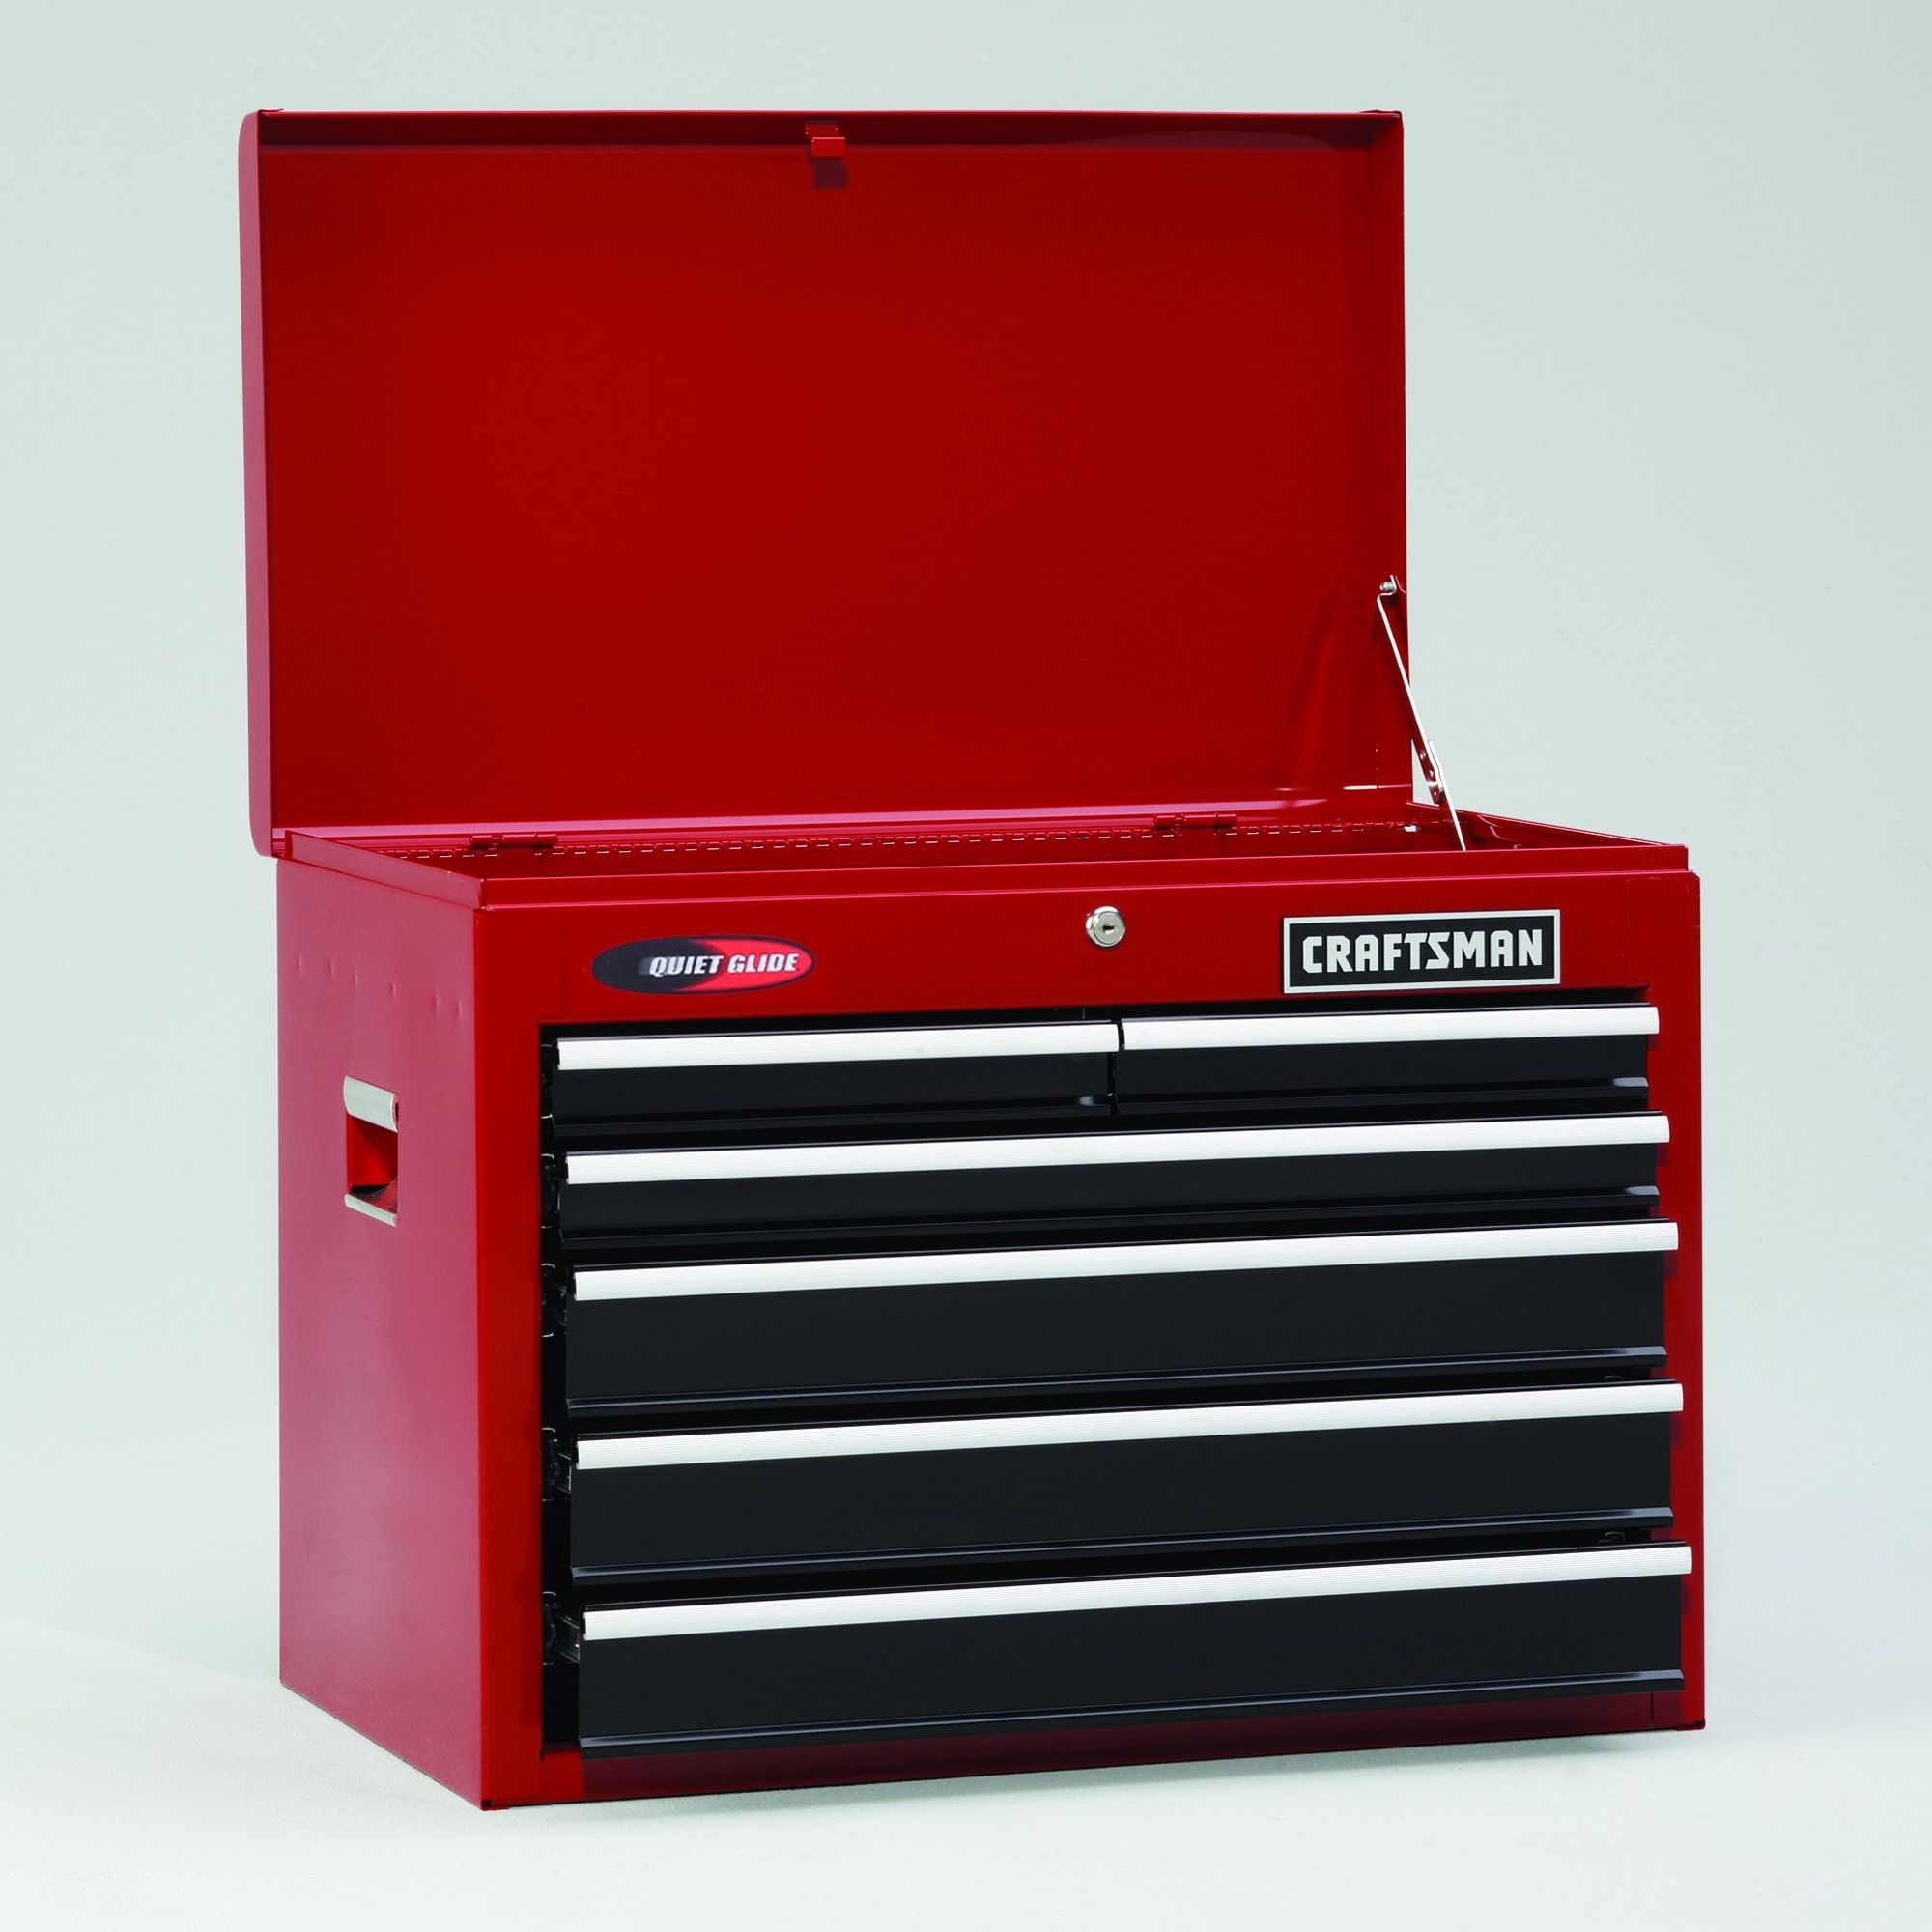 "Craftsman 26"""" 6-Drawer Quiet Glide Tool Chest - Red/Black"